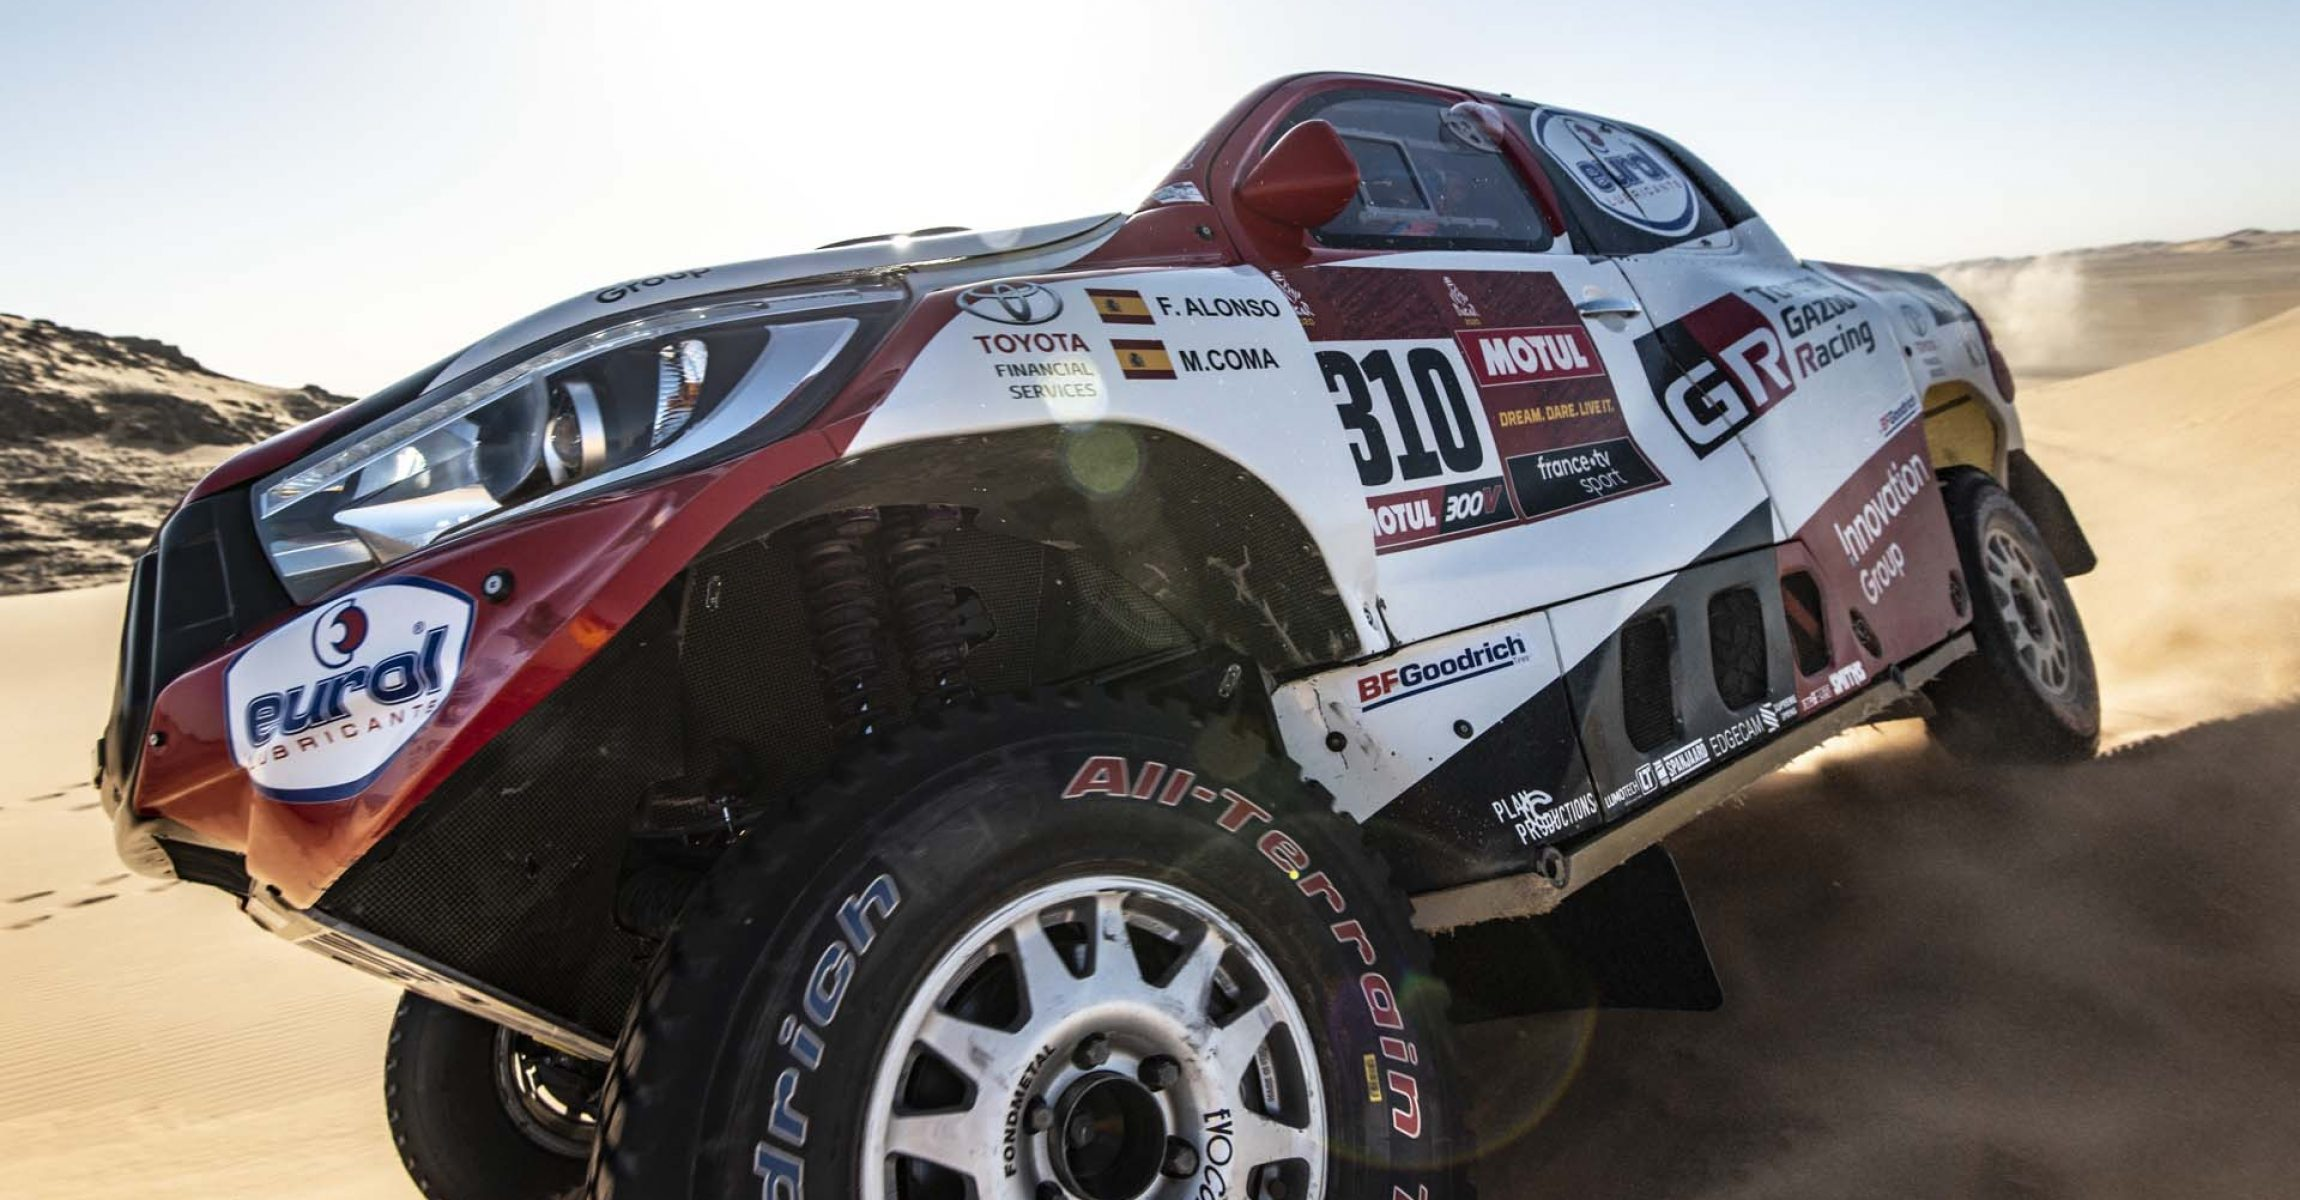 310 Alonso Fernando (esp), Coma Marc (esp), Toyota Hilux, Toyota Gazoo Ragin, Auto, Car, action during Stage 8 of the Dakar 2020 between Wadi Al-Dawasir and Wadi Al-Dawasir, 713 km - SS 474 km, in Saudi Arabia, on January 13, 2020 - Photo Charly Lopez / ASO